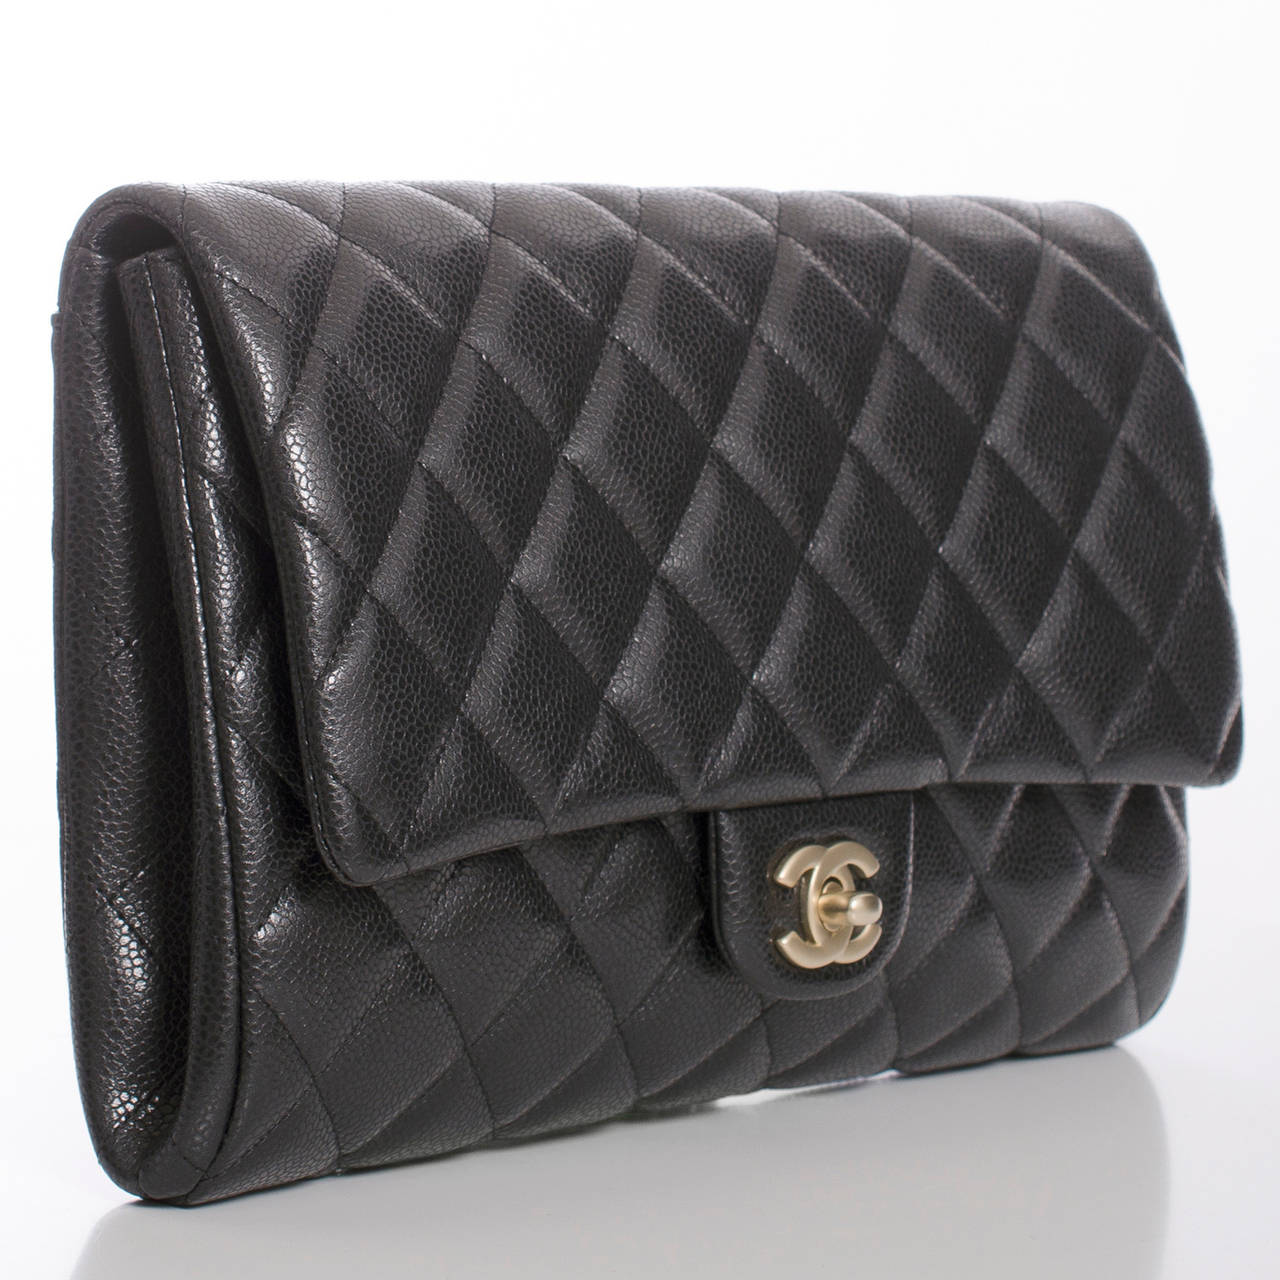 Chanel New Clutch With Chain of quilted black caviar leather with matte gold tone hardware.    This bag features CC turnlock closure, a rear envelope pocket, and interwoven gold tone chain link with black leather shoulder strap which can be tucked